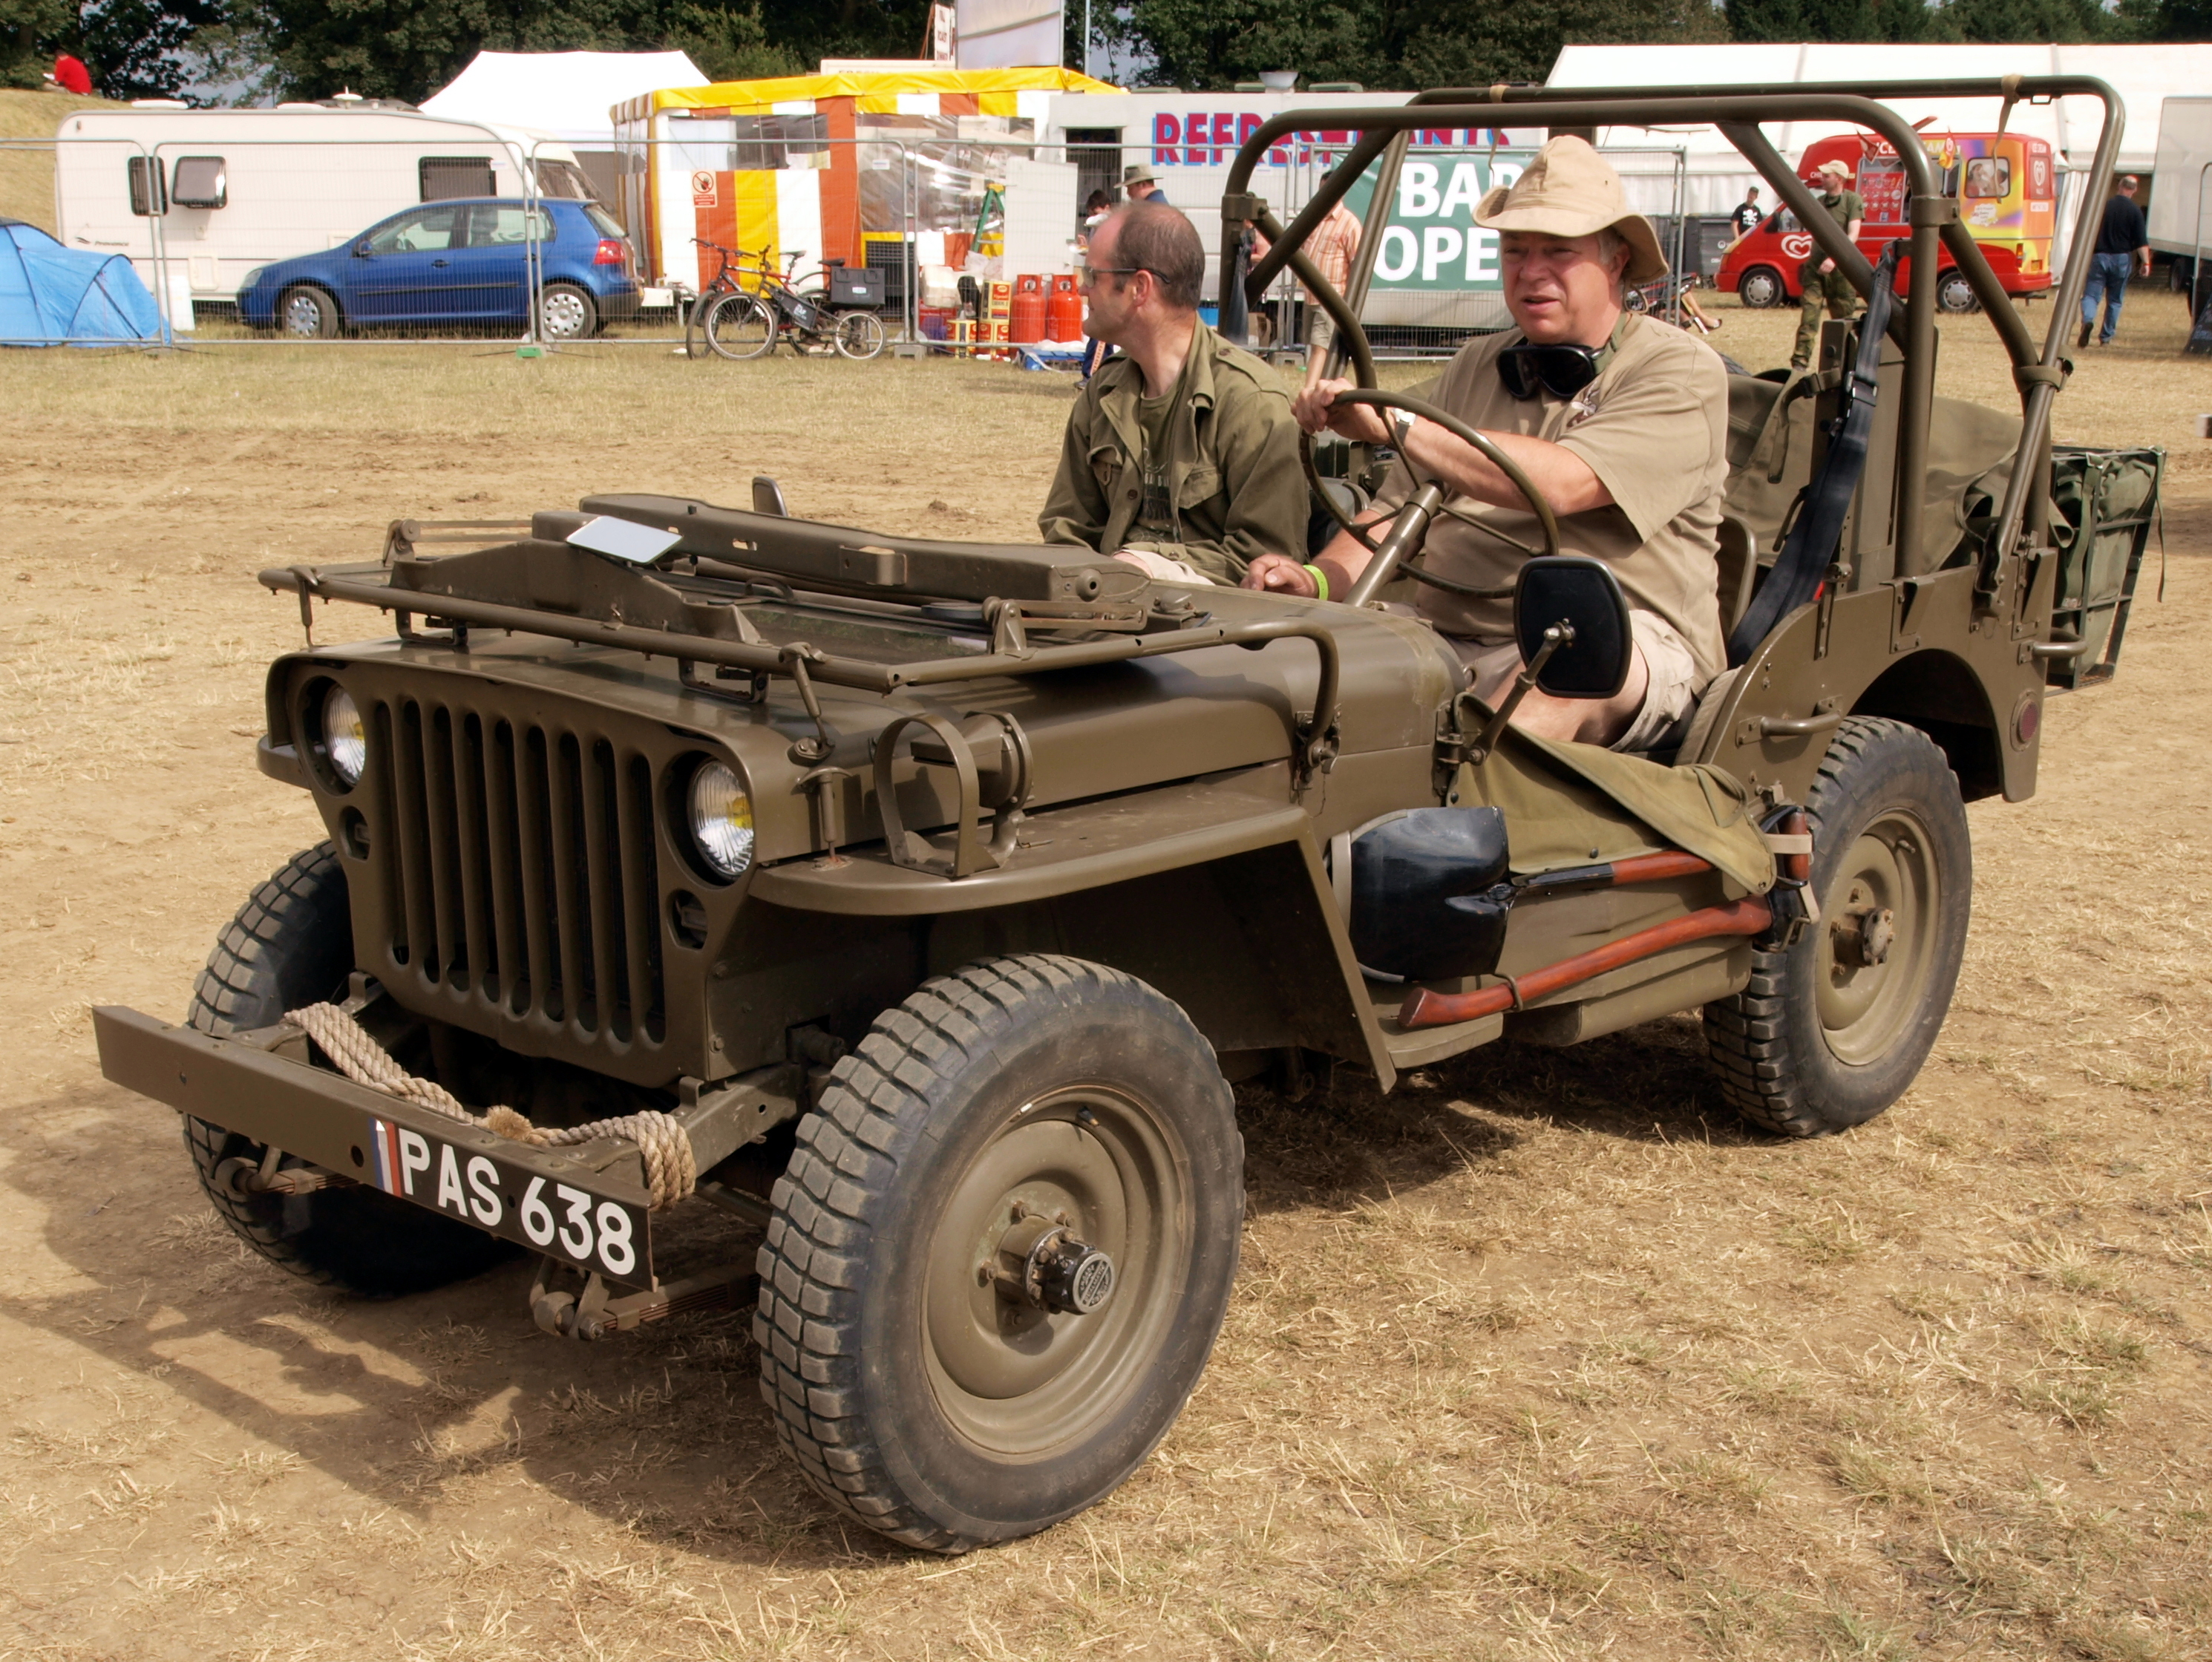 DigInPix - Entité - Hotchkiss Jeep